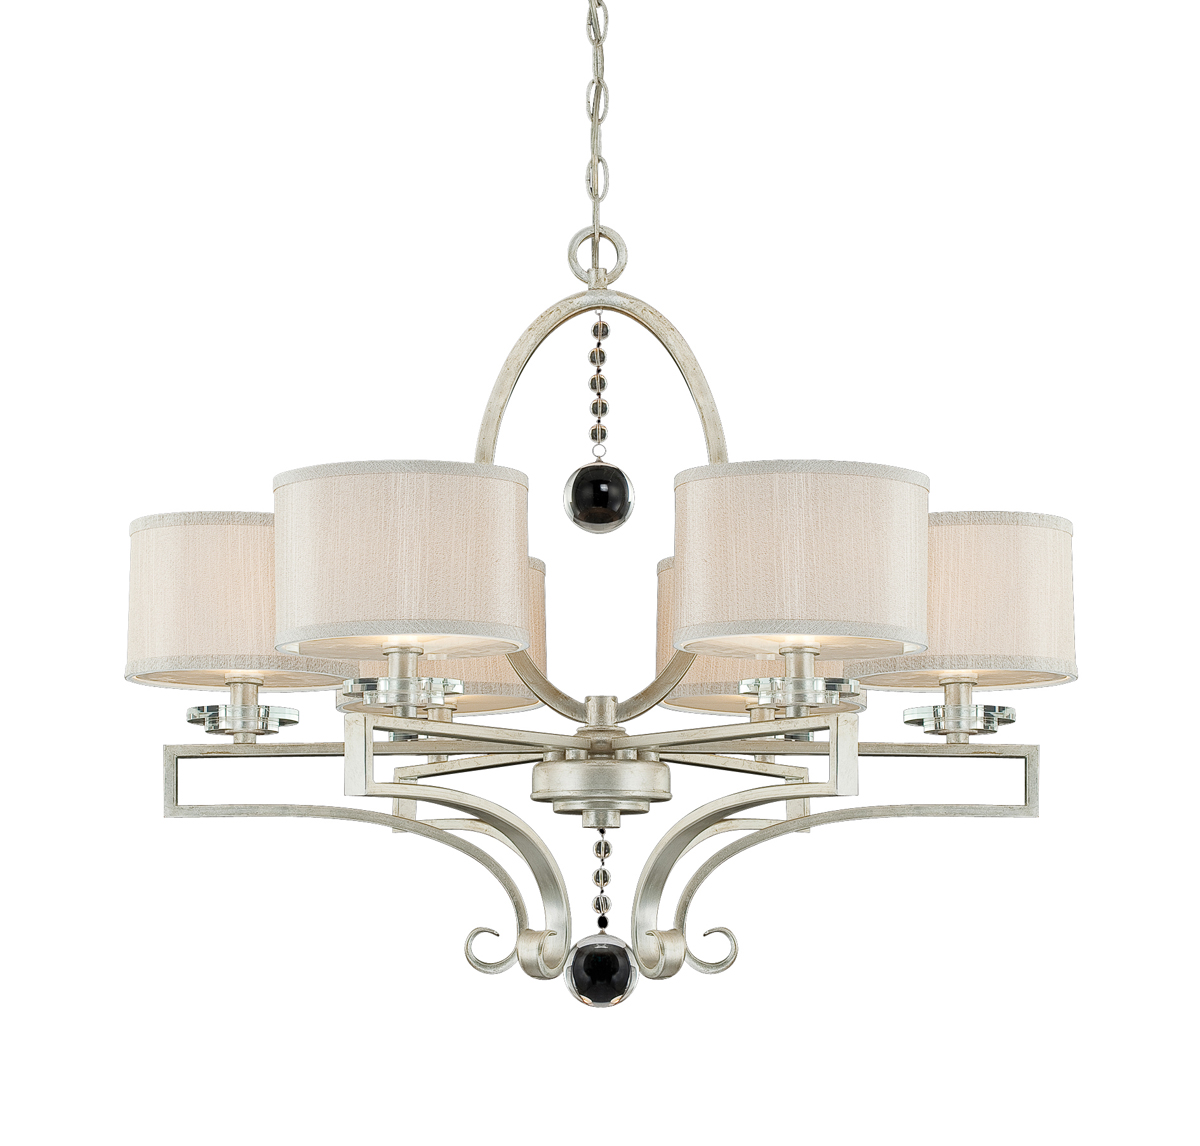 whimsical lighting fixtures. Perfect Savoy House Lighting Clearance Fixtures Lights And With Whimsical Chandeliers. %